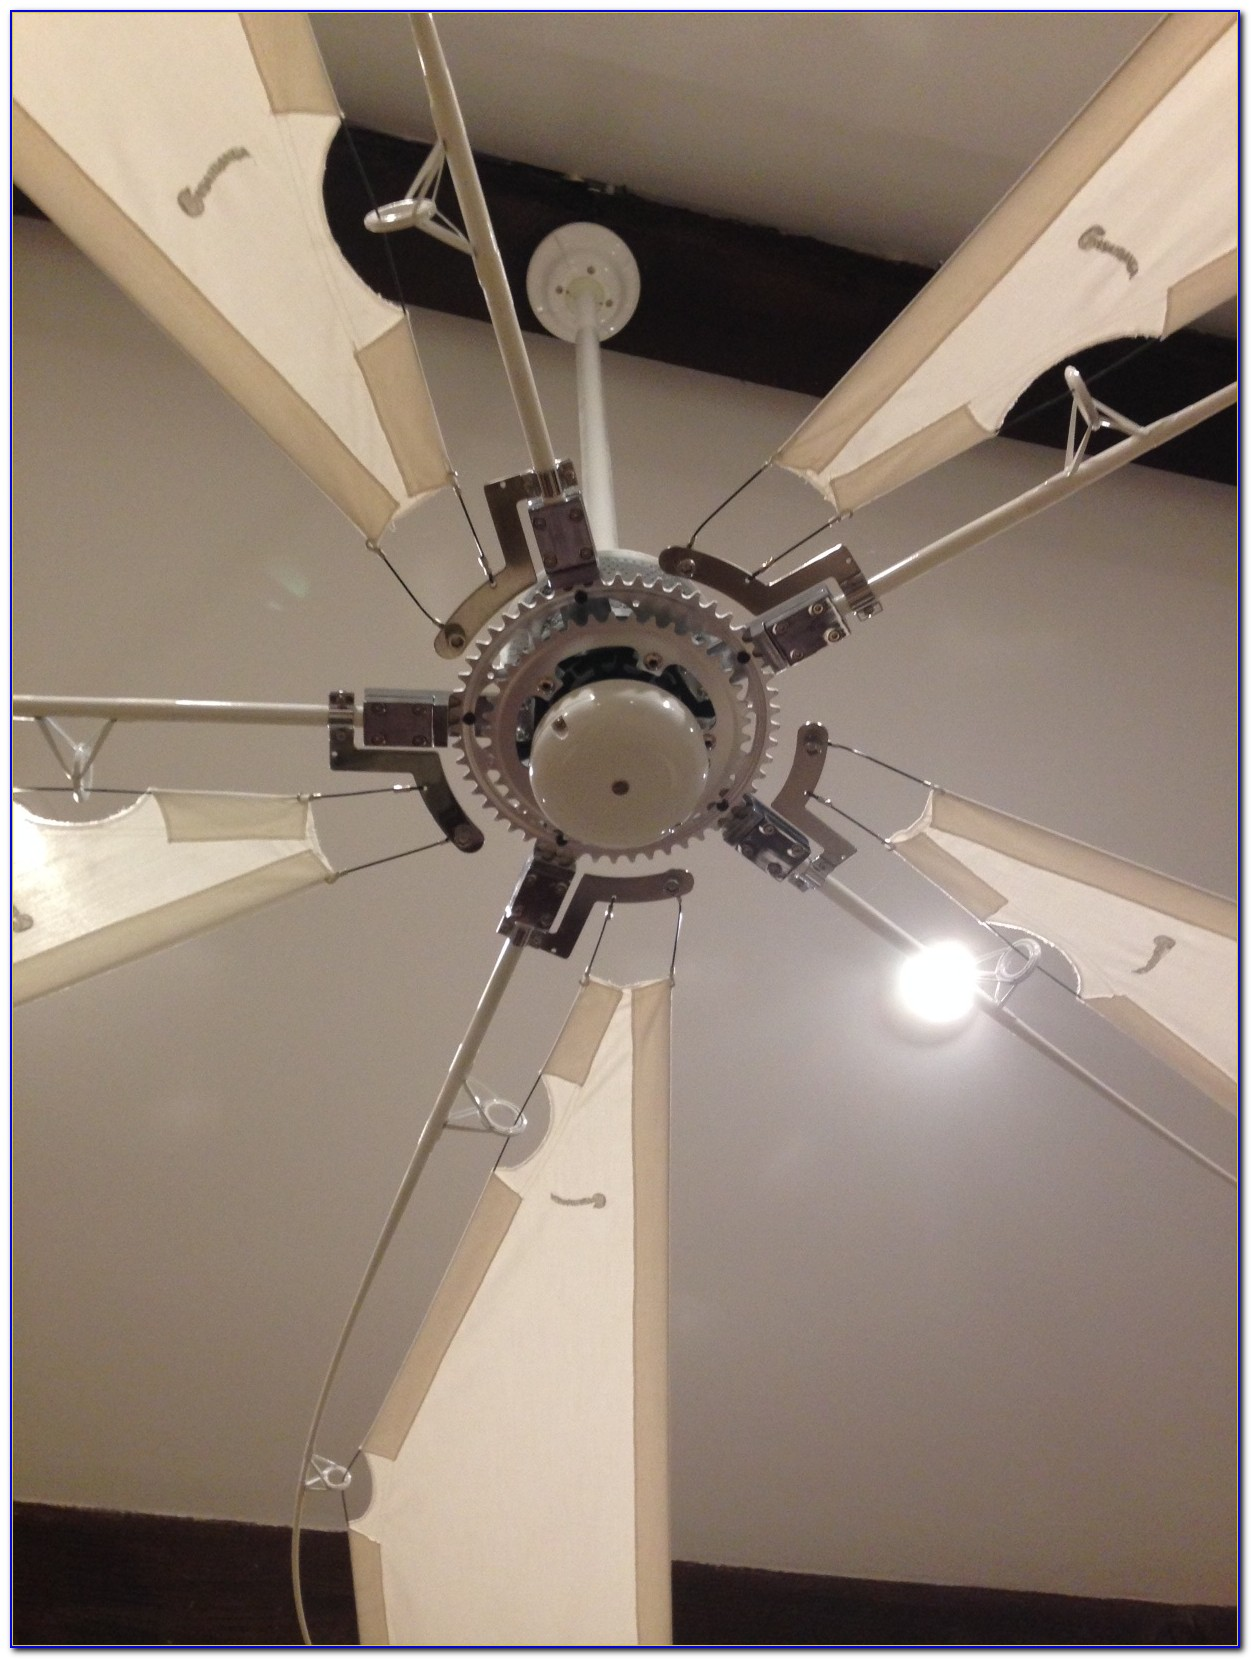 Casablanca Fishing Pole Ceiling Fan Ceiling Home